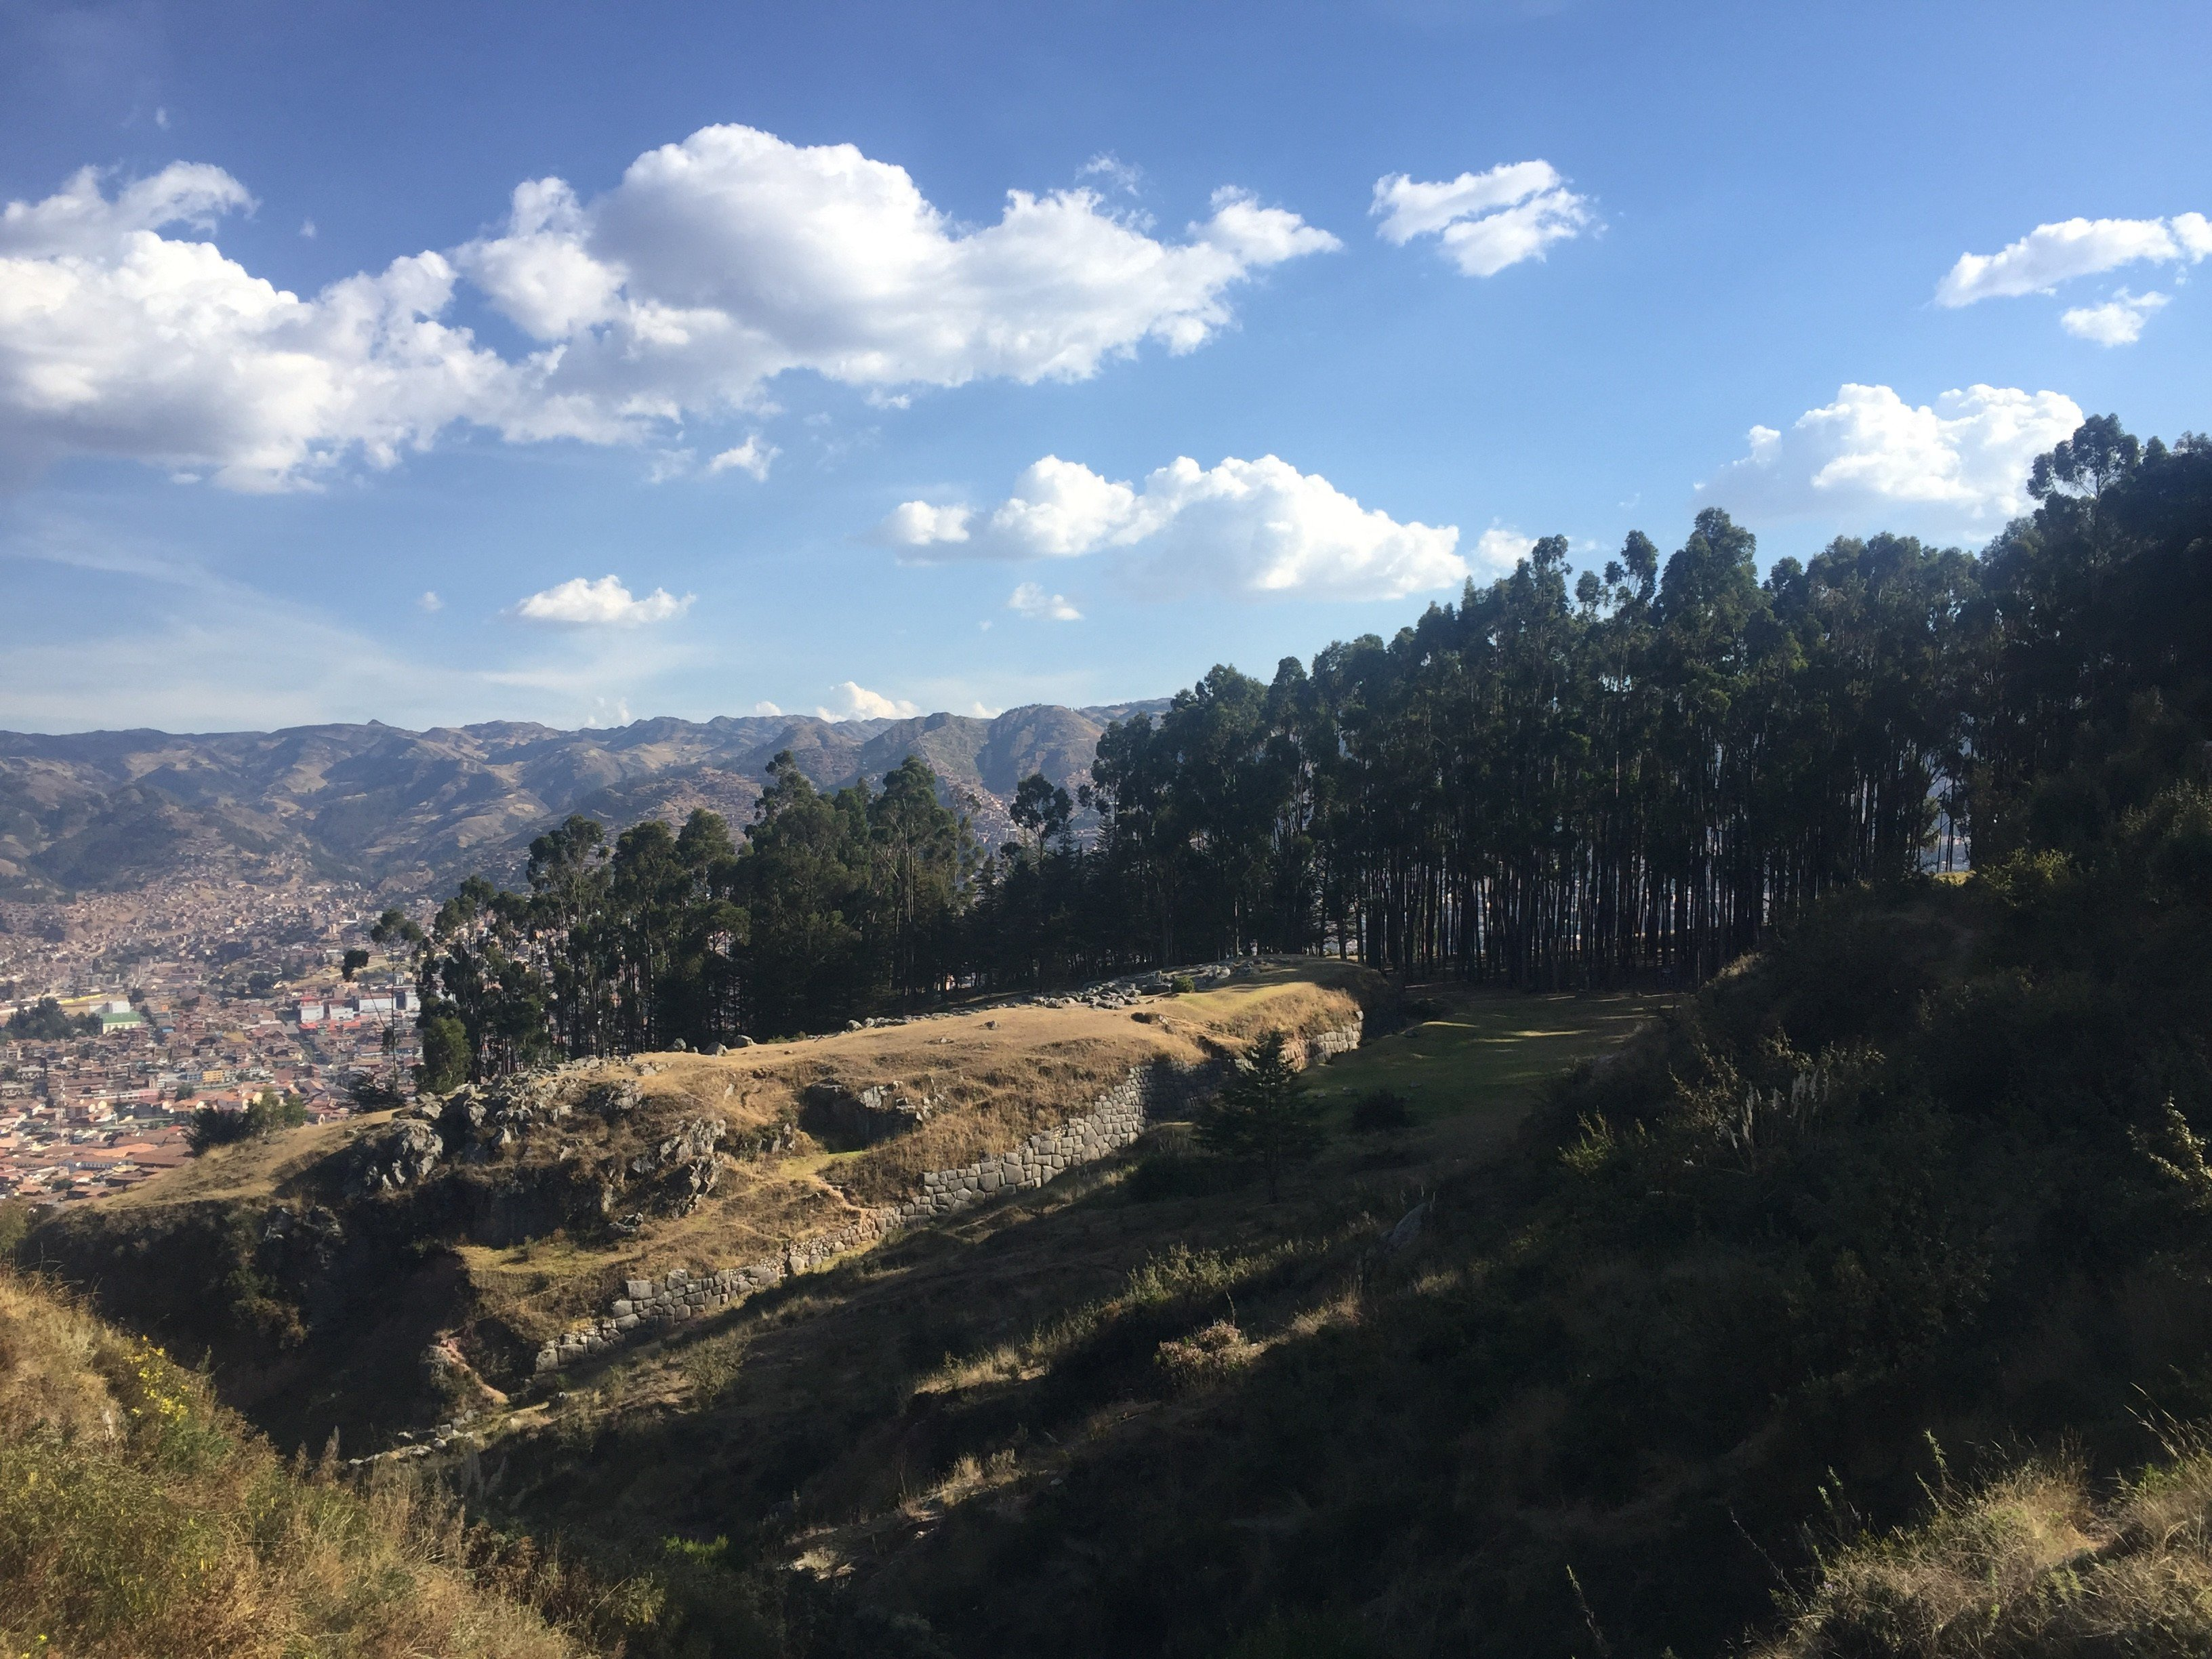 view from the quenko ruins in Cusco, Peru